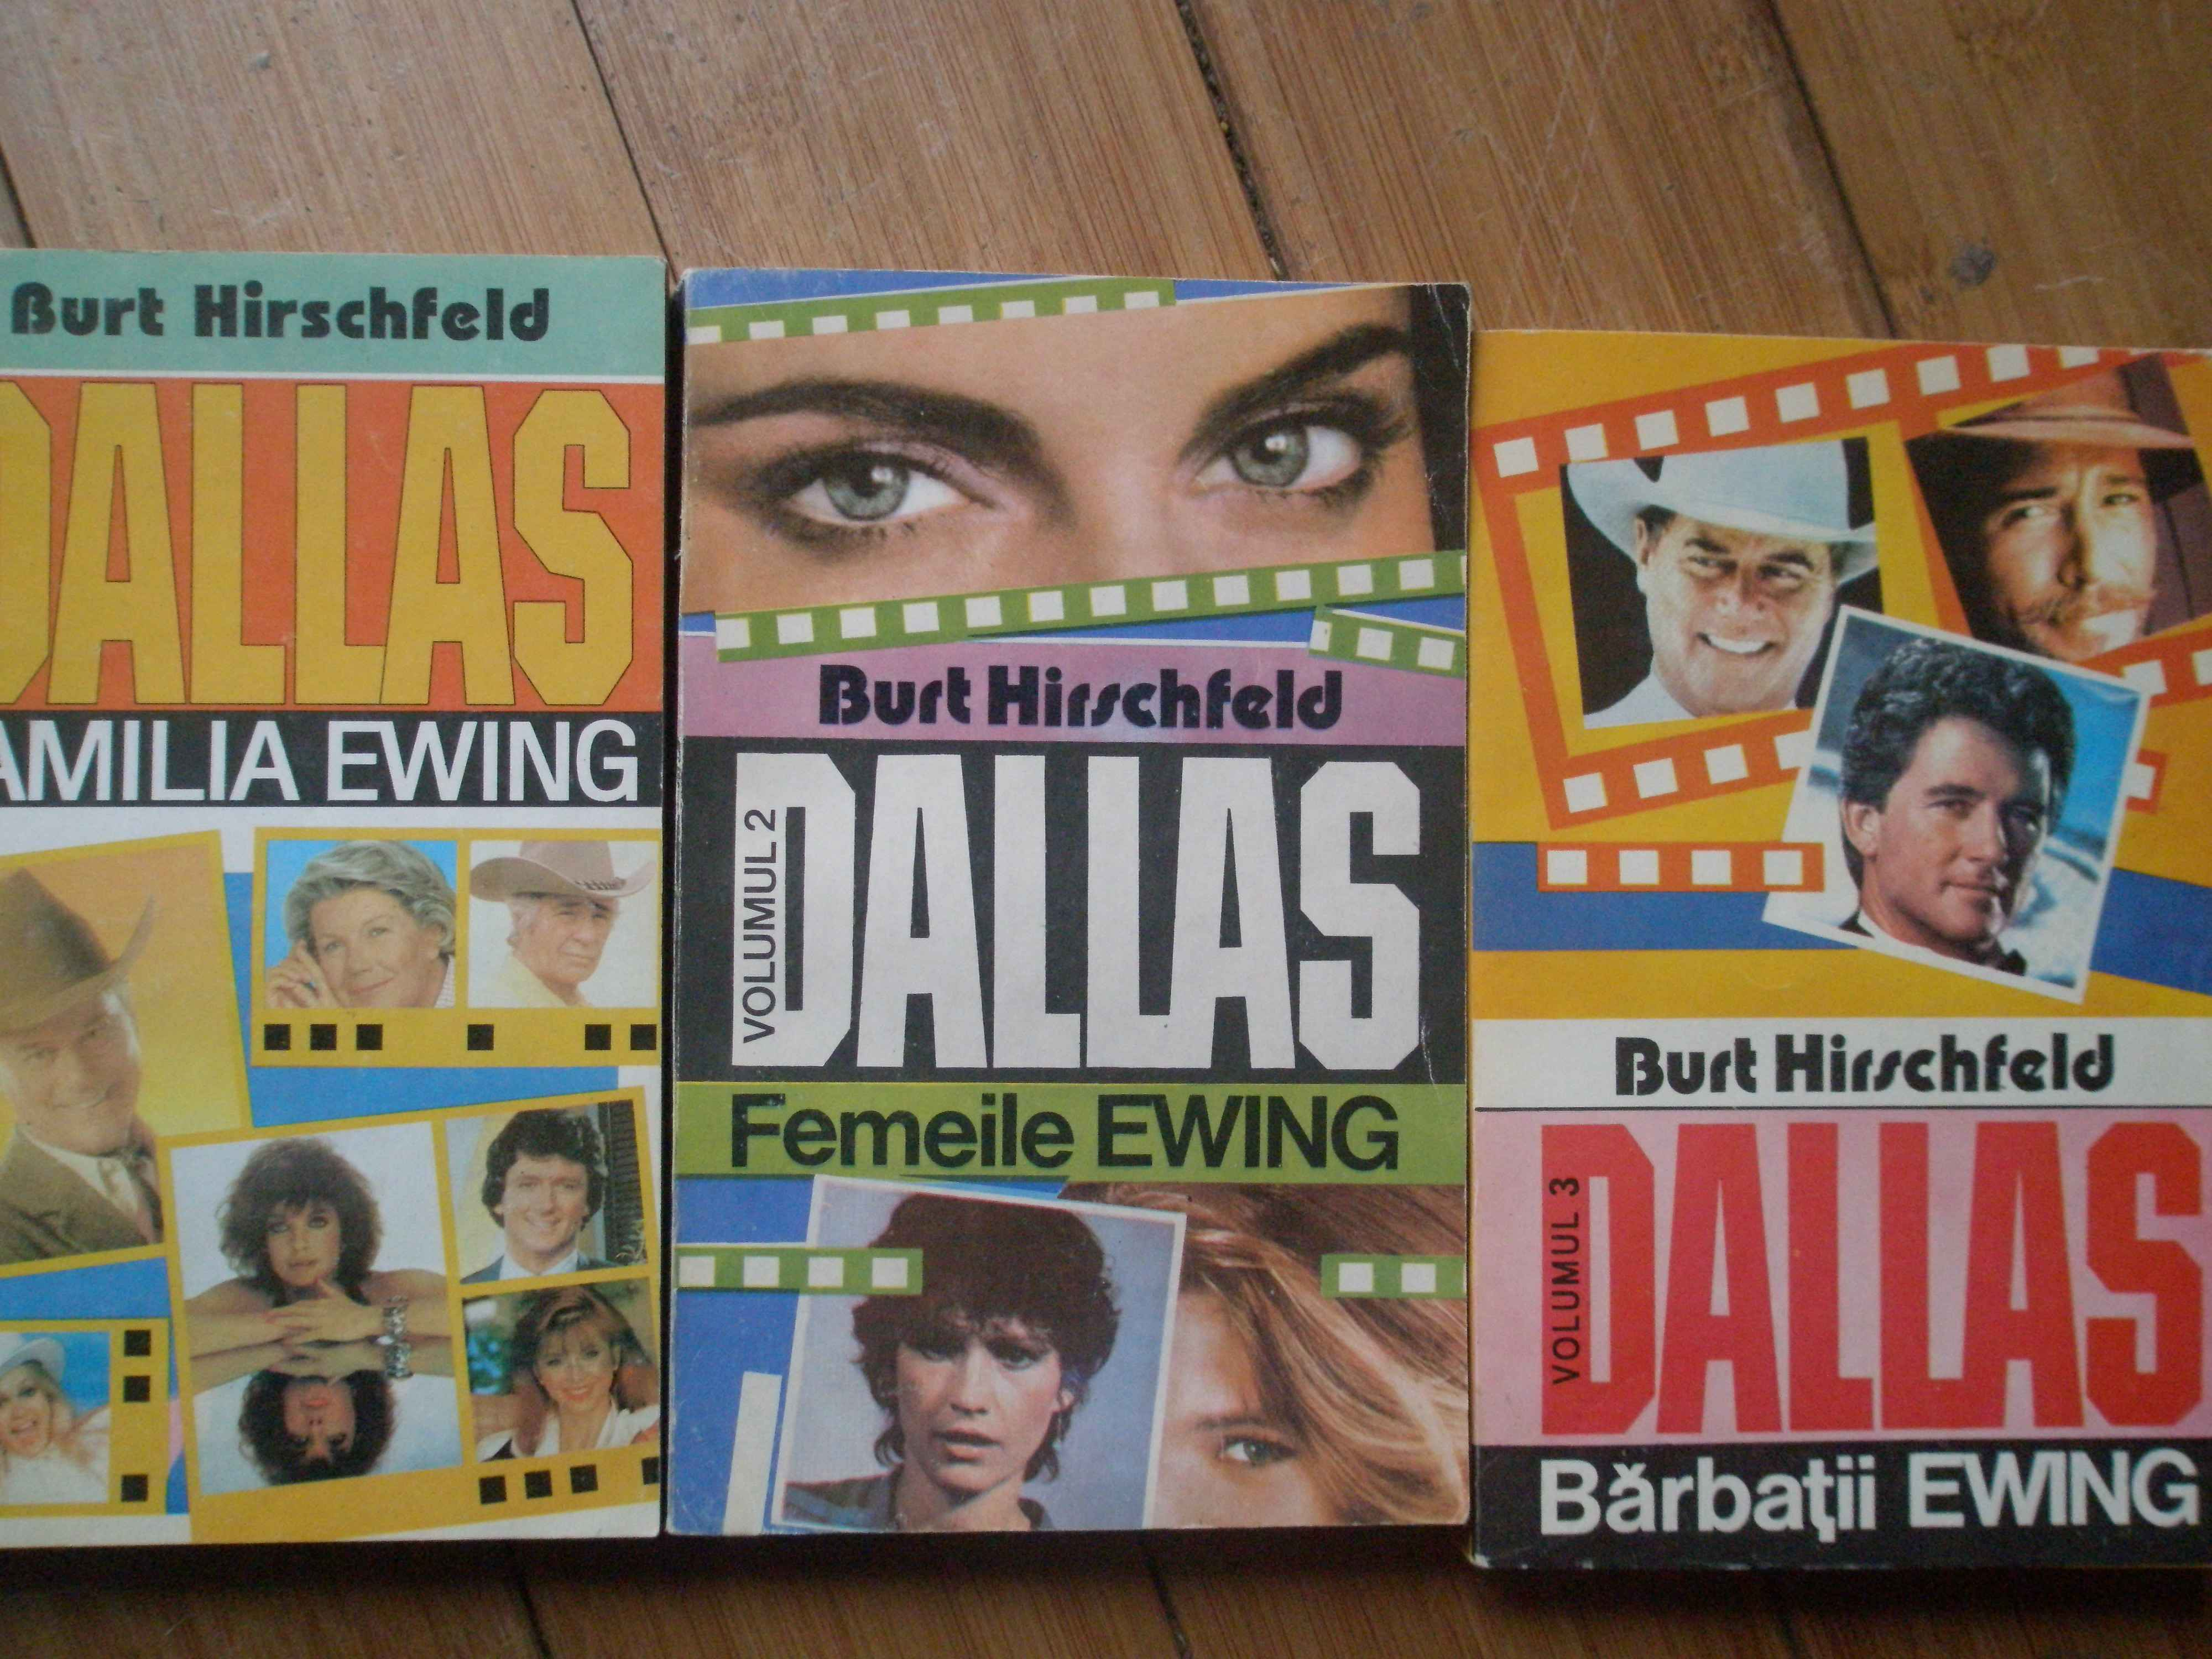 DALLAS FAMILIA EWING VOL.1-3                                                              ...